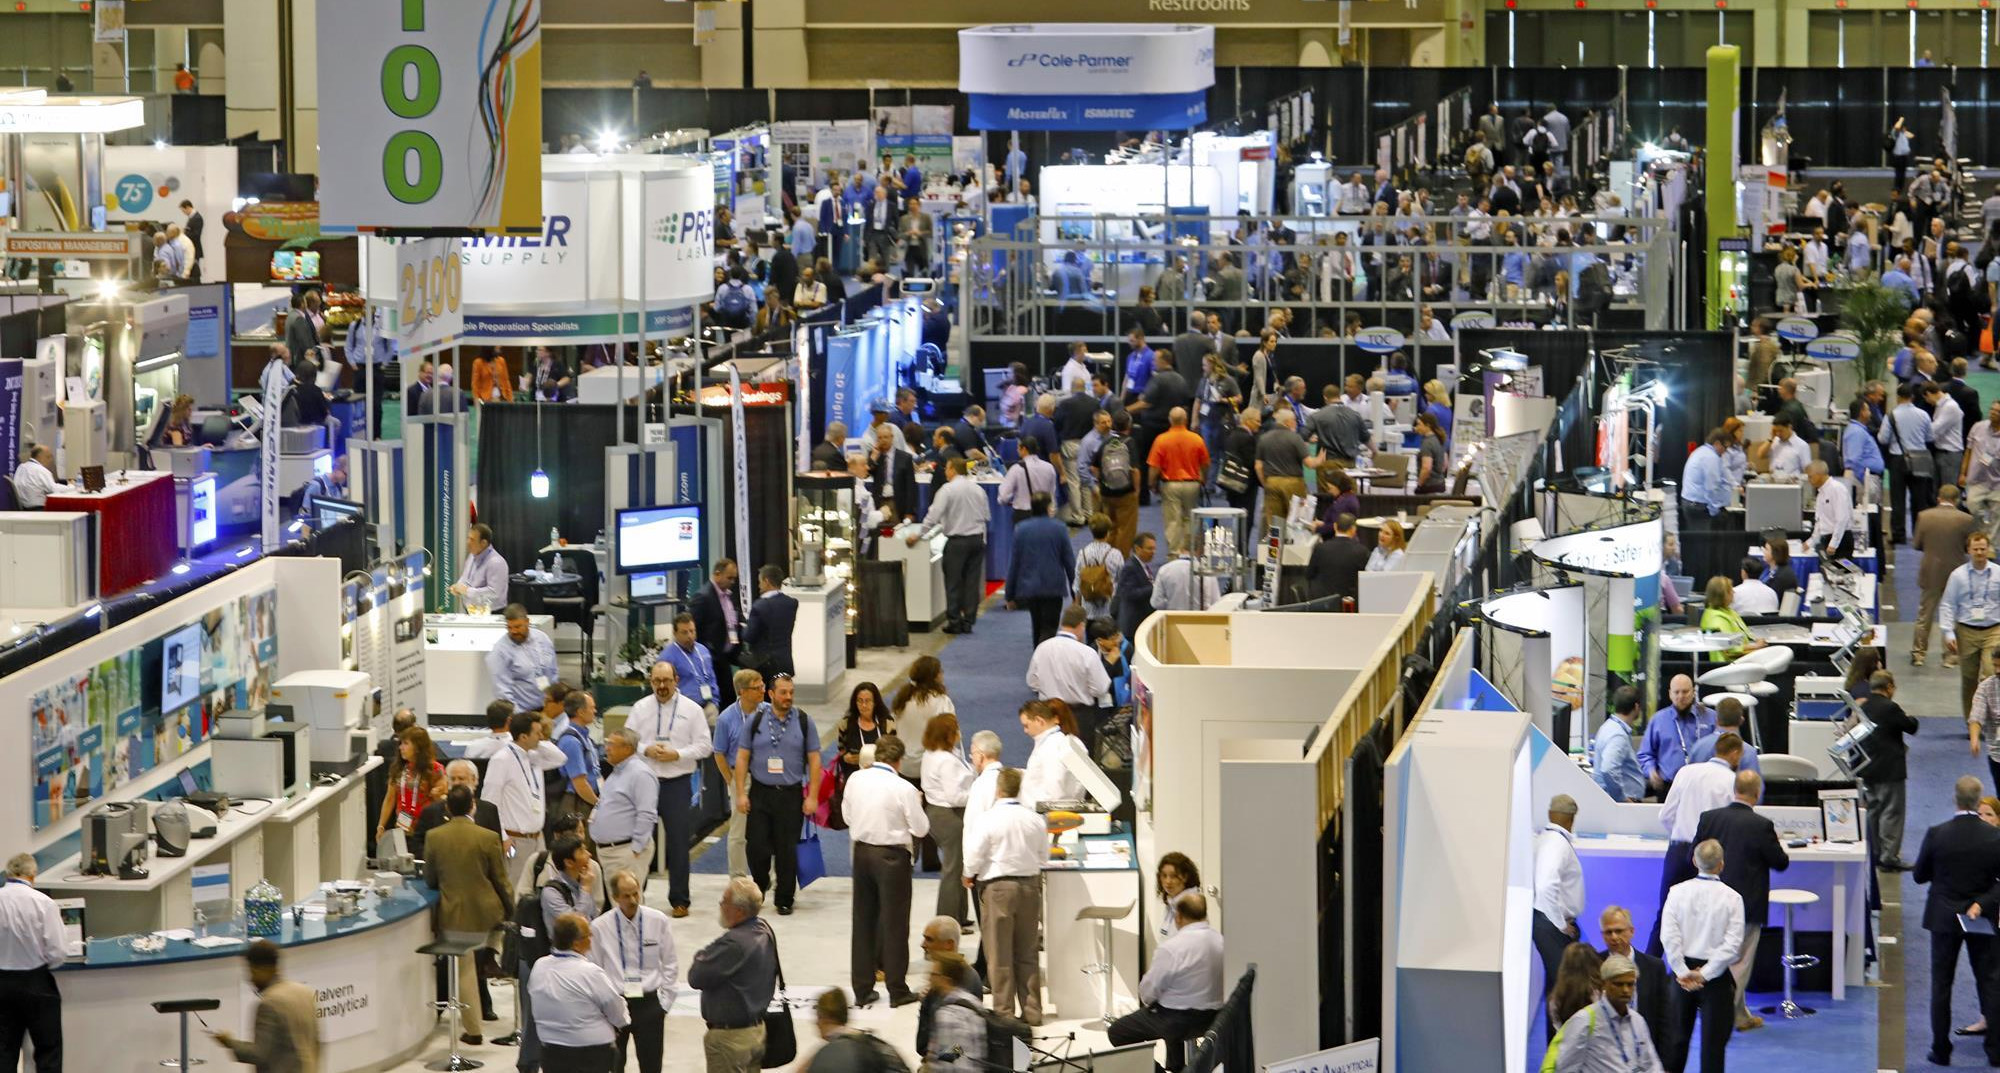 Exhibition floor at Pittcon